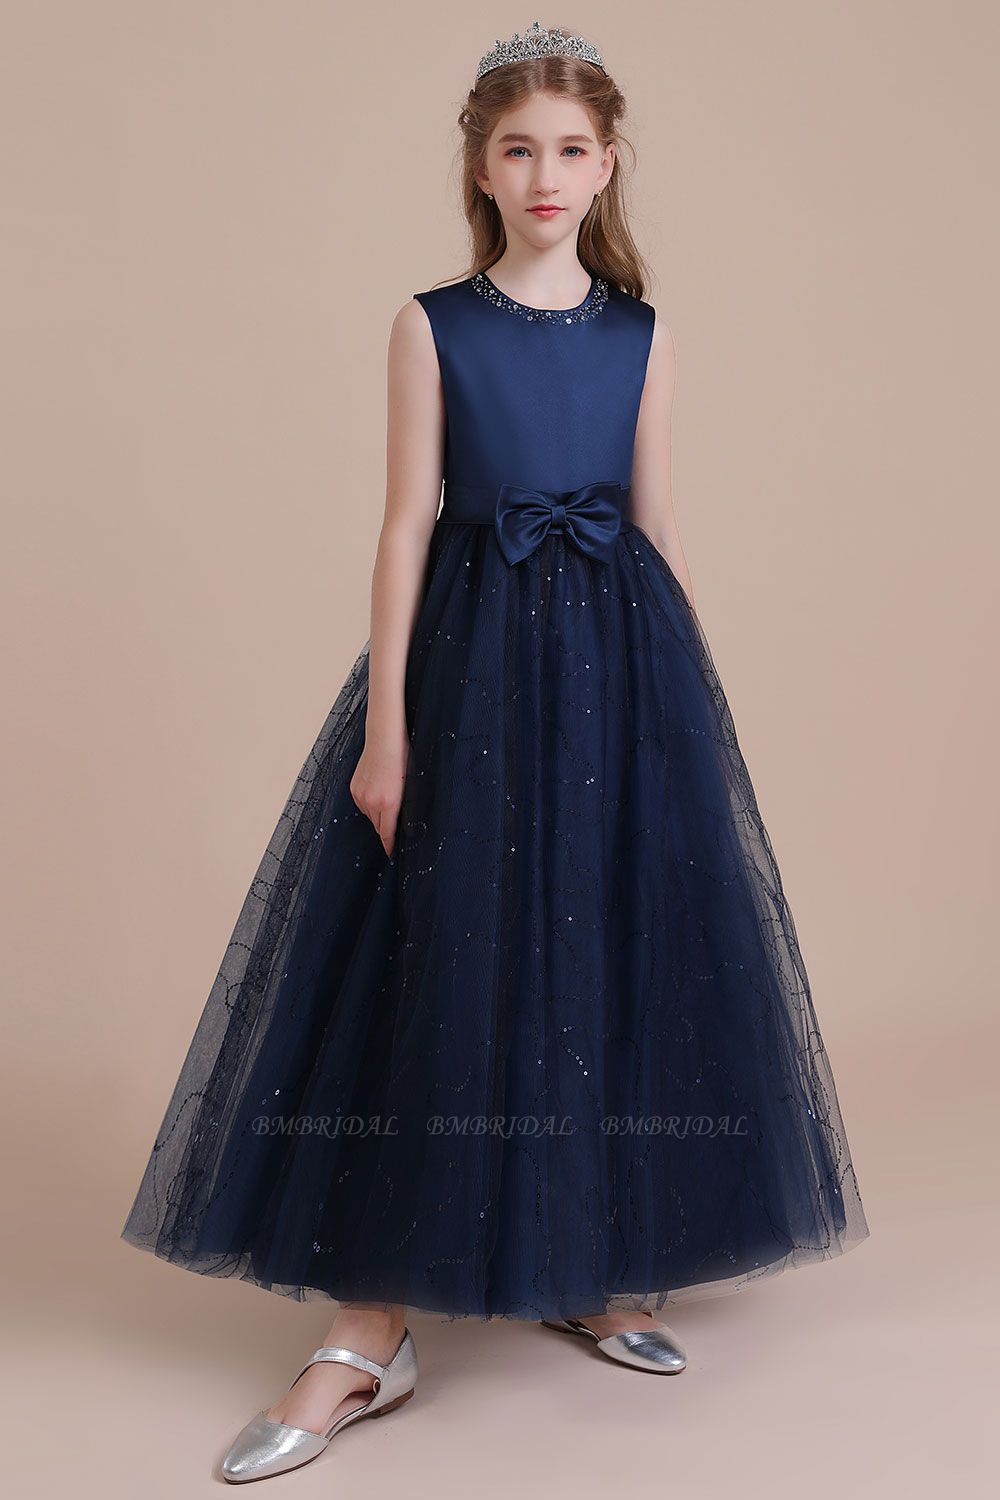 BMbridal A-Line Chic Bow Tulle Flower Girl Dress Online